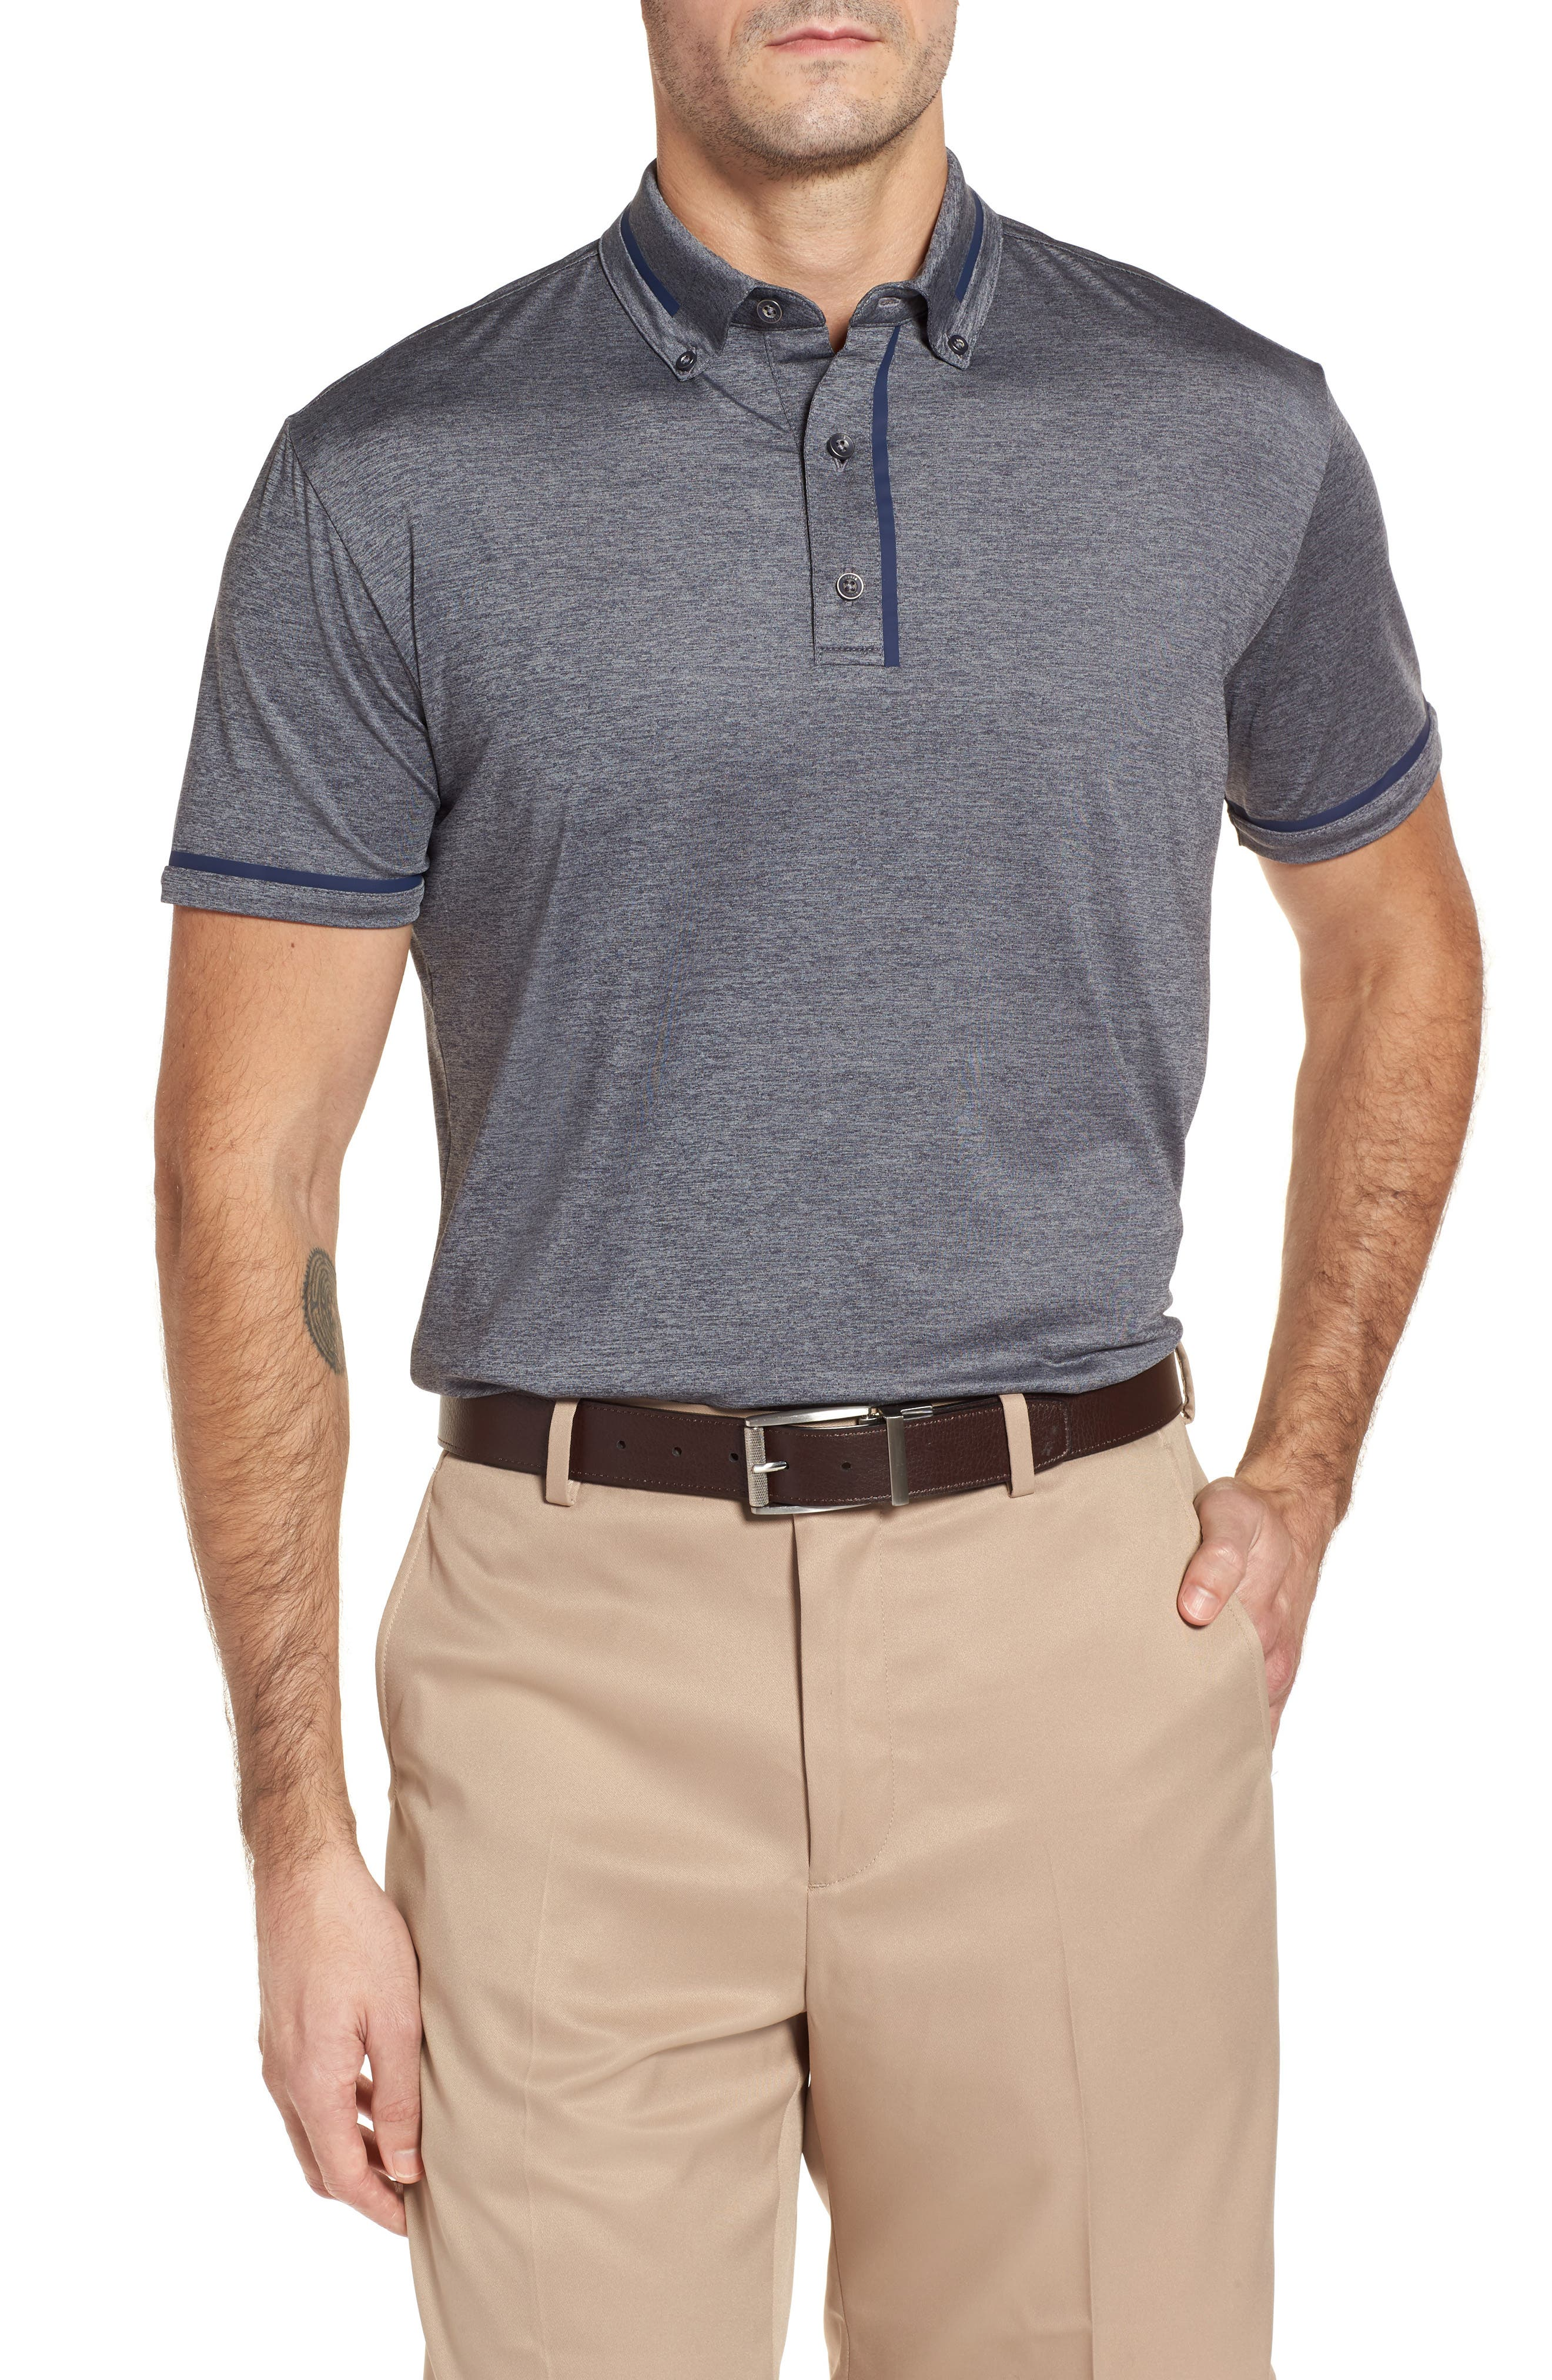 Alternate Image 1 Selected - Bobby Jones R18 Tech Chapman Welded Trim Polo